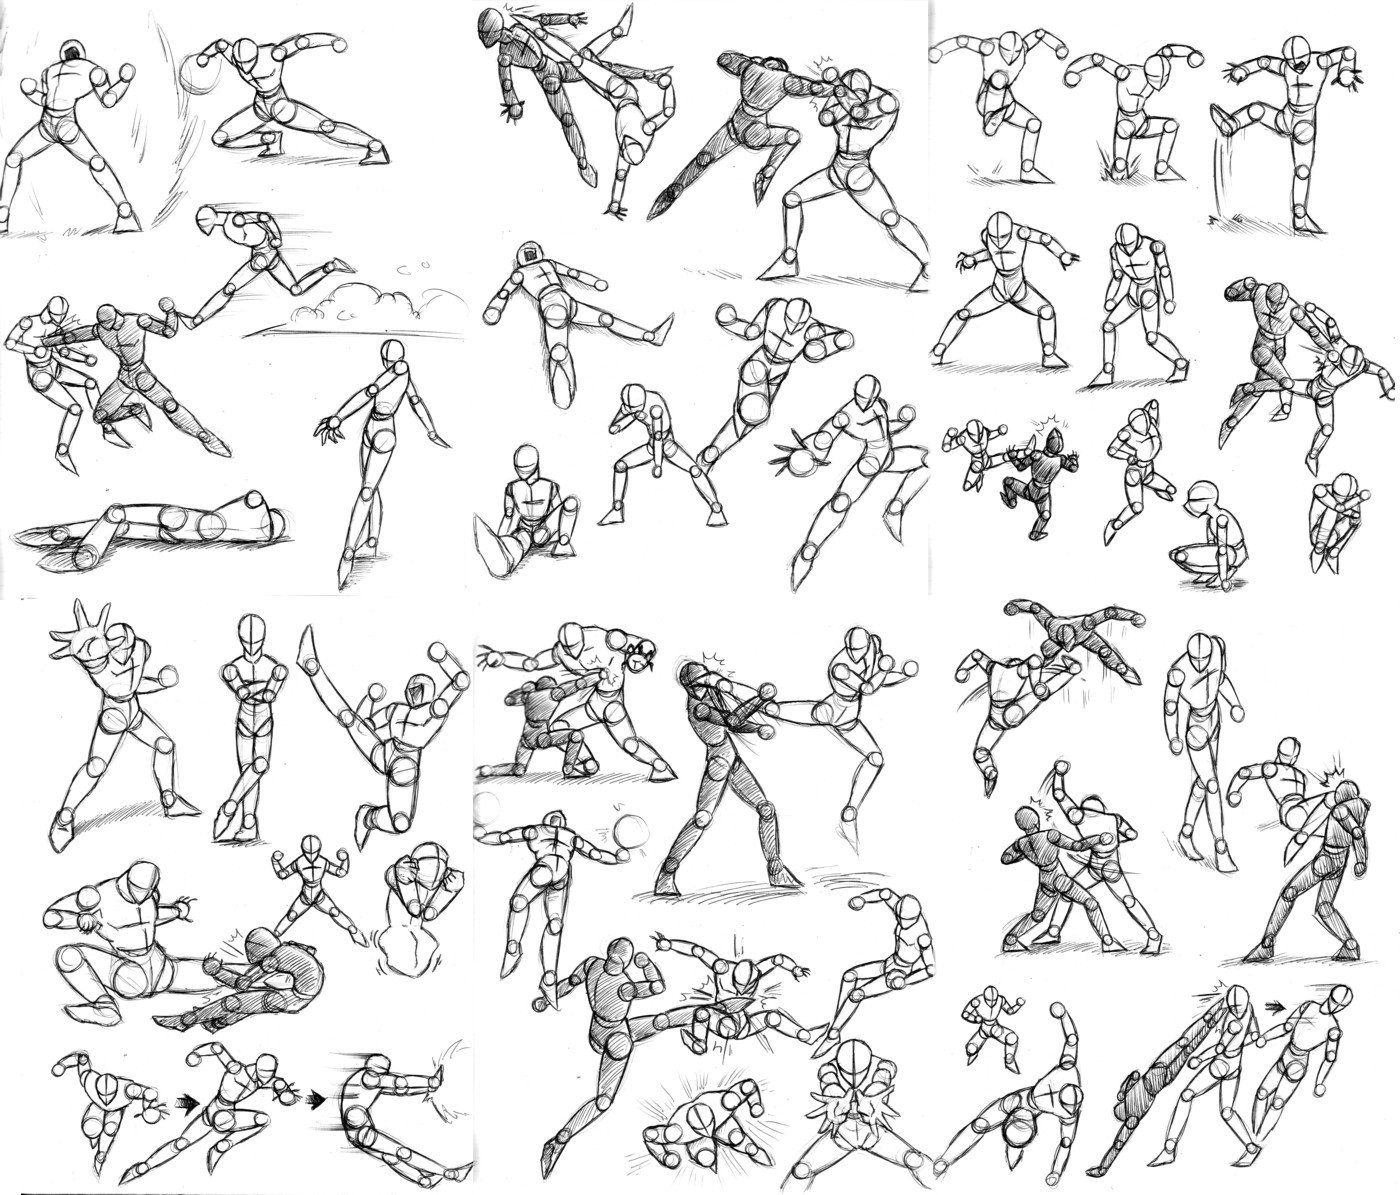 These poses i got from dbz cell saga buu saga movie12 and shaman king xd these are so old xp but this is what i use to do when im bored and